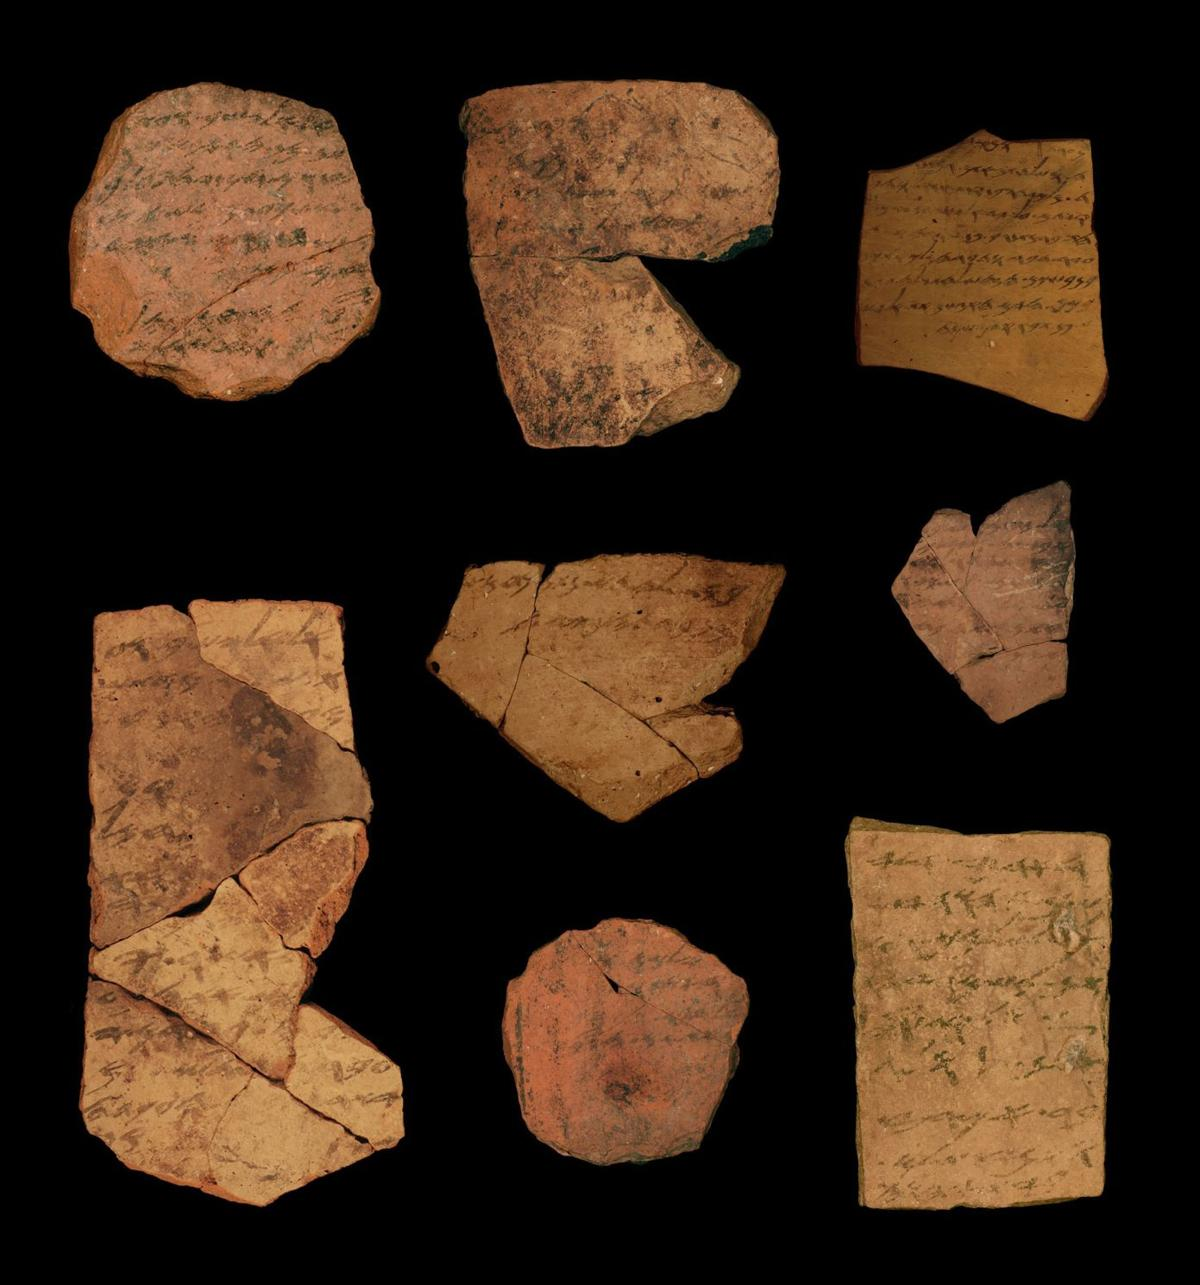 Pottery writings can help date Bible